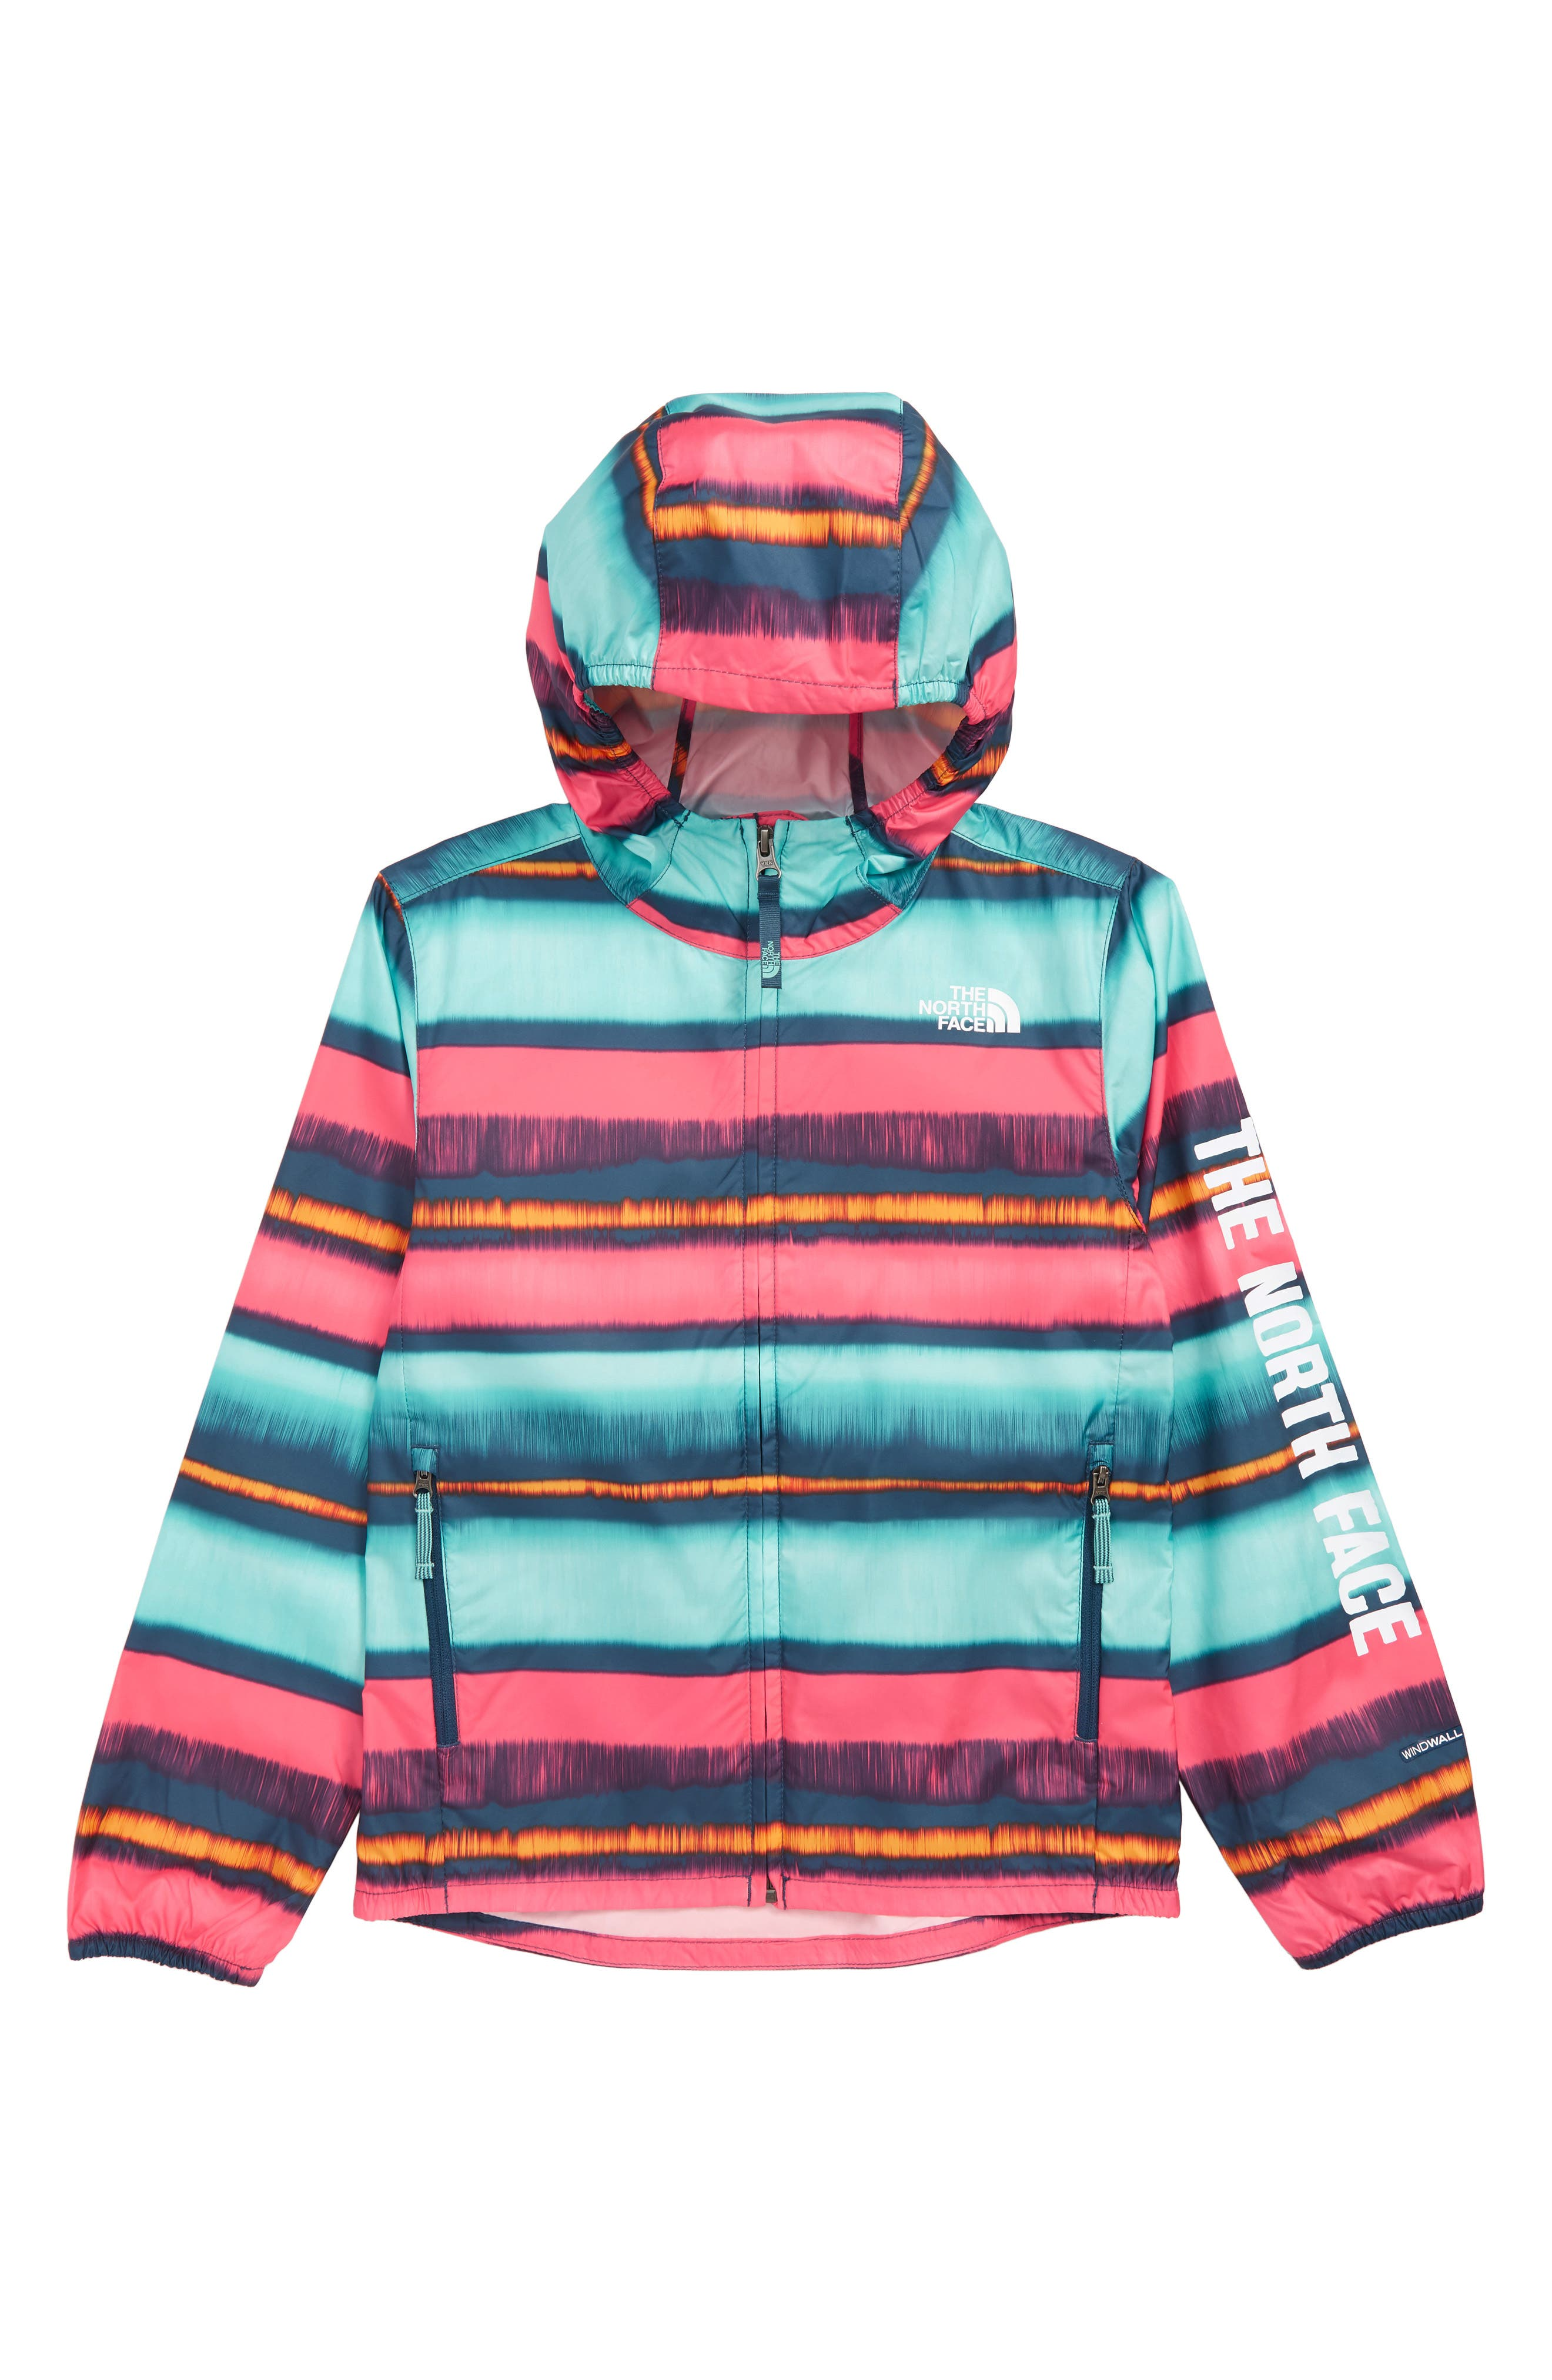 THE NORTH FACE,                             Flurry Hooded Windbreaker,                             Main thumbnail 1, color,                             BLUE WING TEAL STRP